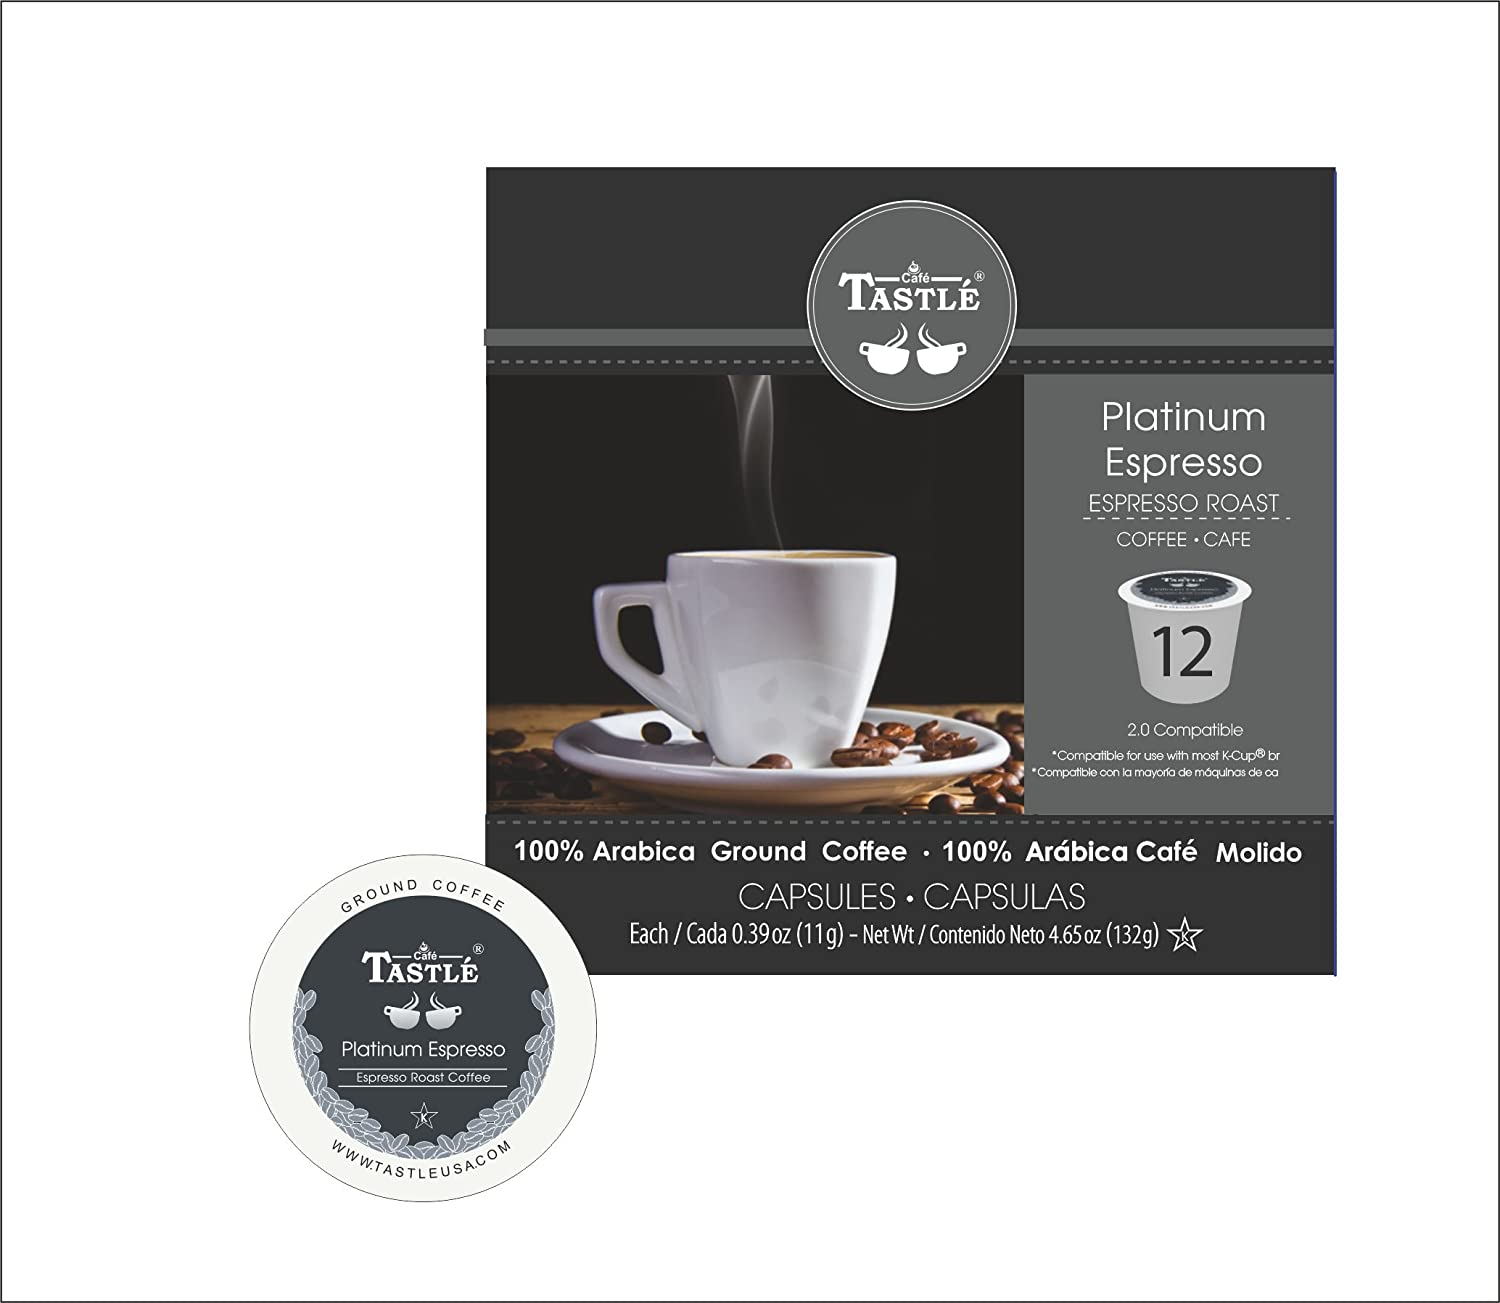 Cafe Tastlé Platinum Espresso Roast Single Serve Coffee, 12 Count: Amazon.com: Grocery & Gourmet Food